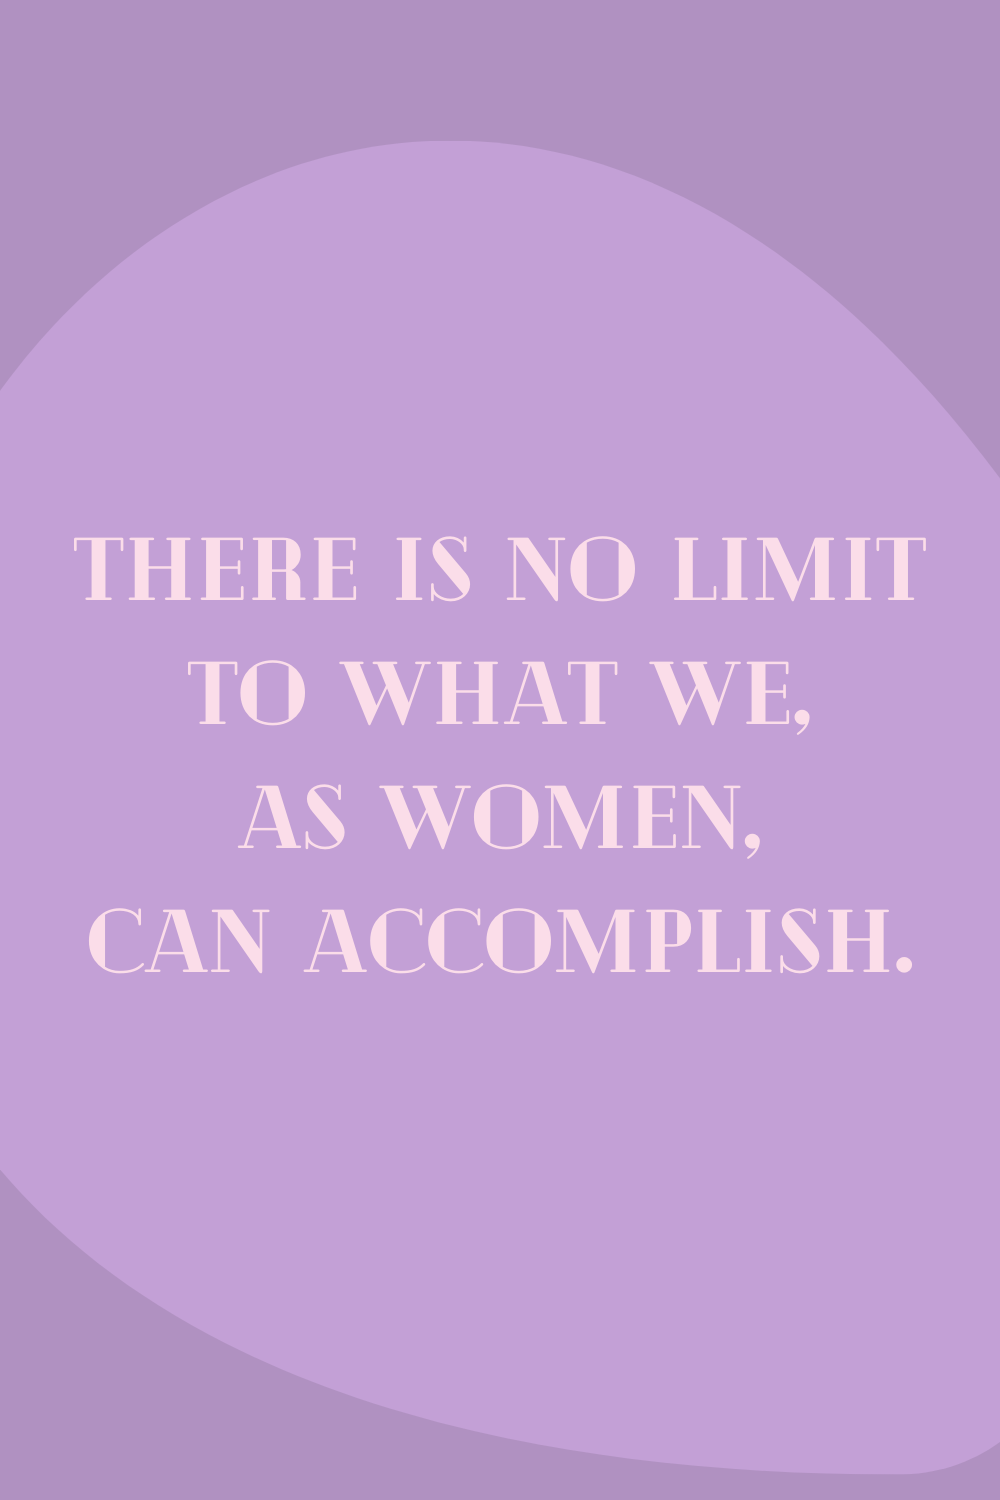 Accomplished Women Quotes For Nat'l Women's Day